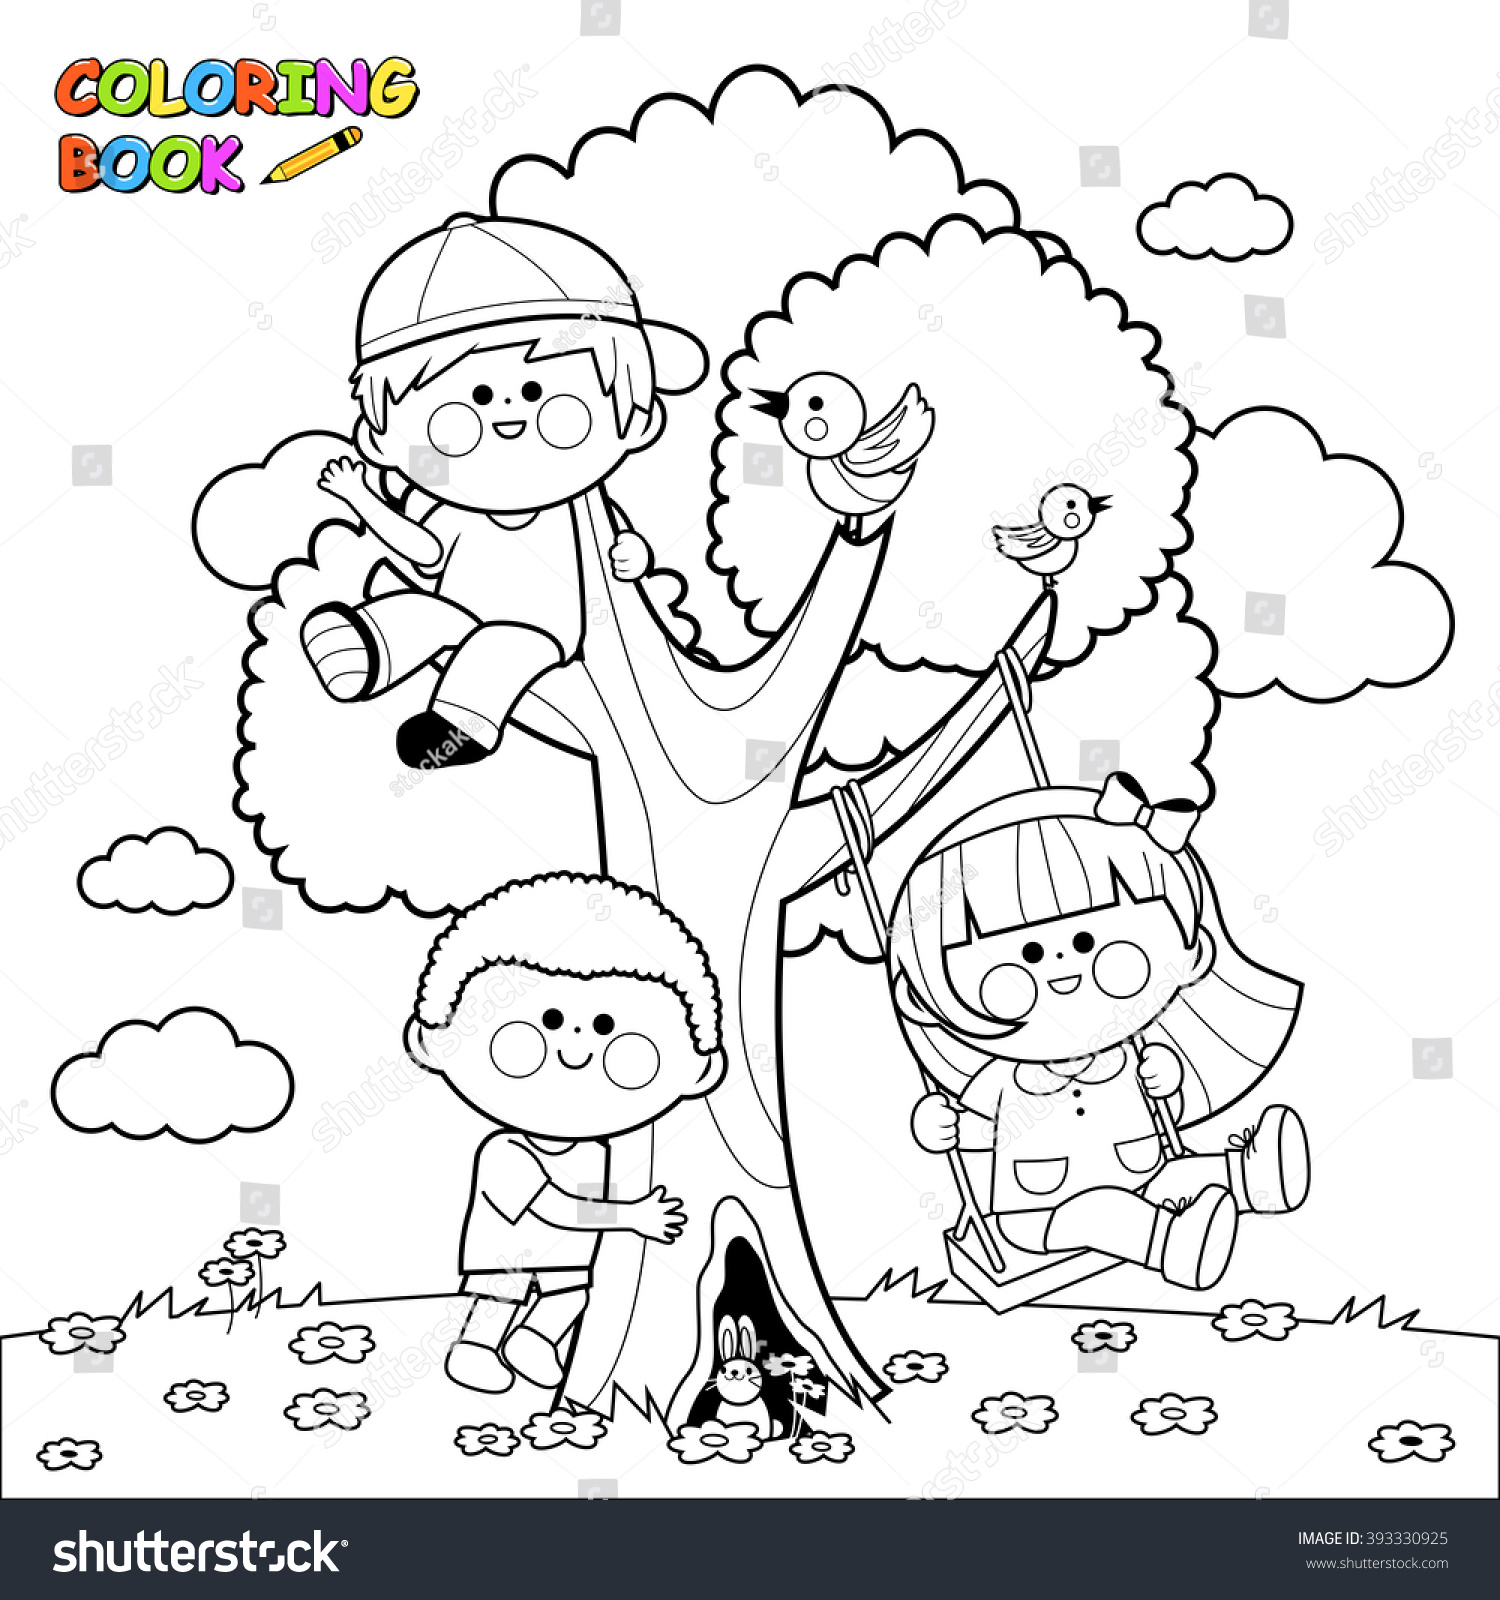 palm tree coloring pages latest coconut palmpalm tree with